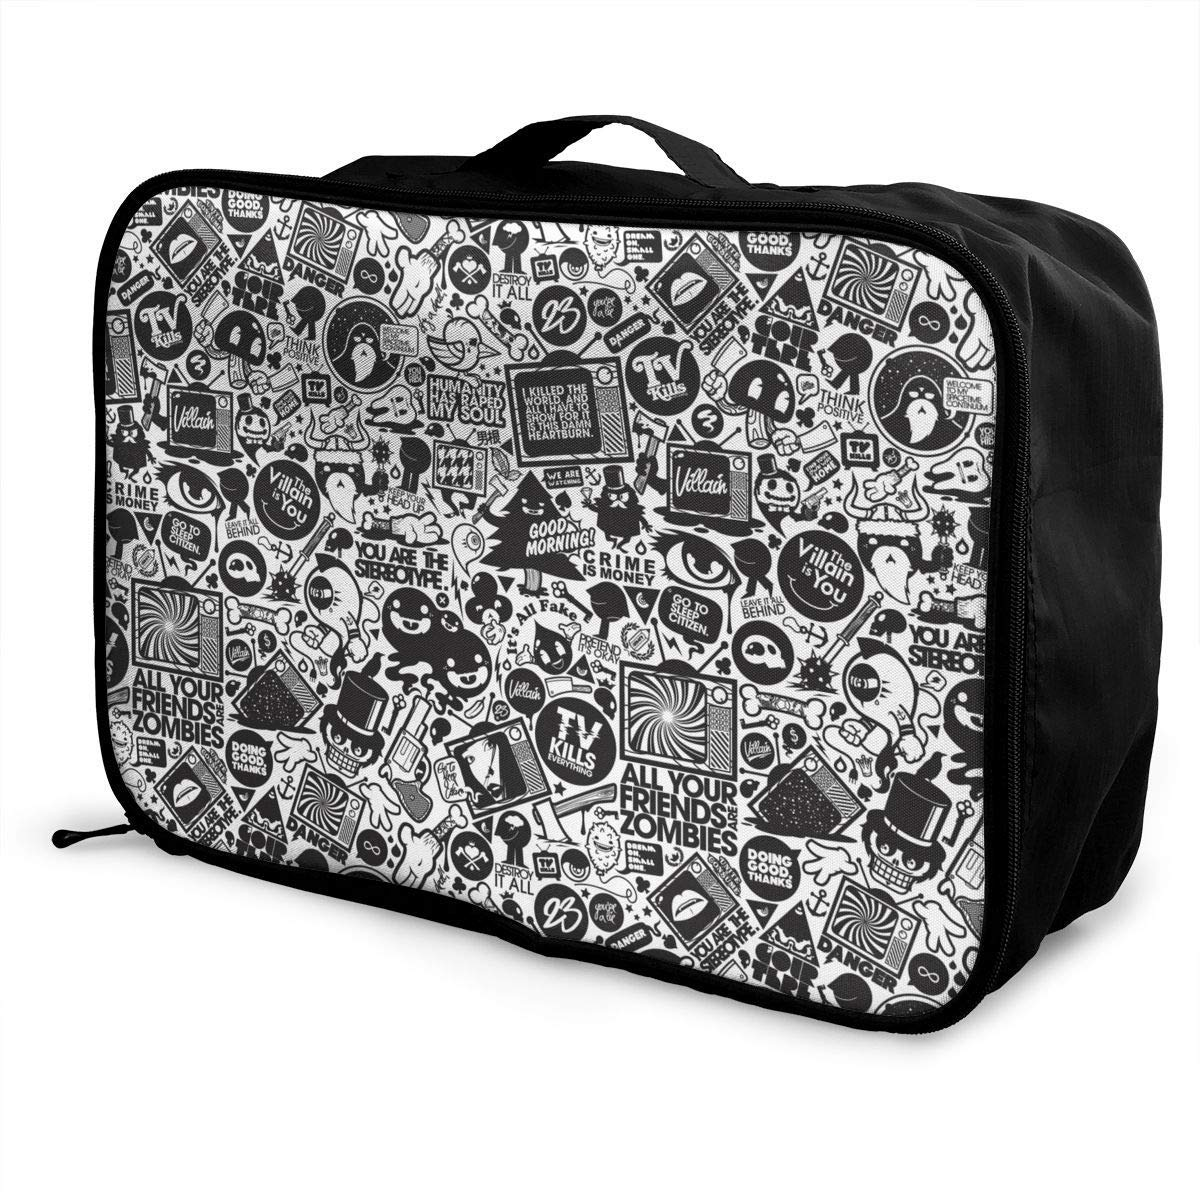 JTRVW Luggage Bags for Travel Travel Lightweight Waterproof Foldable Storage Carry Luggage Duffle Tote Bag Retro Black Trippy Art